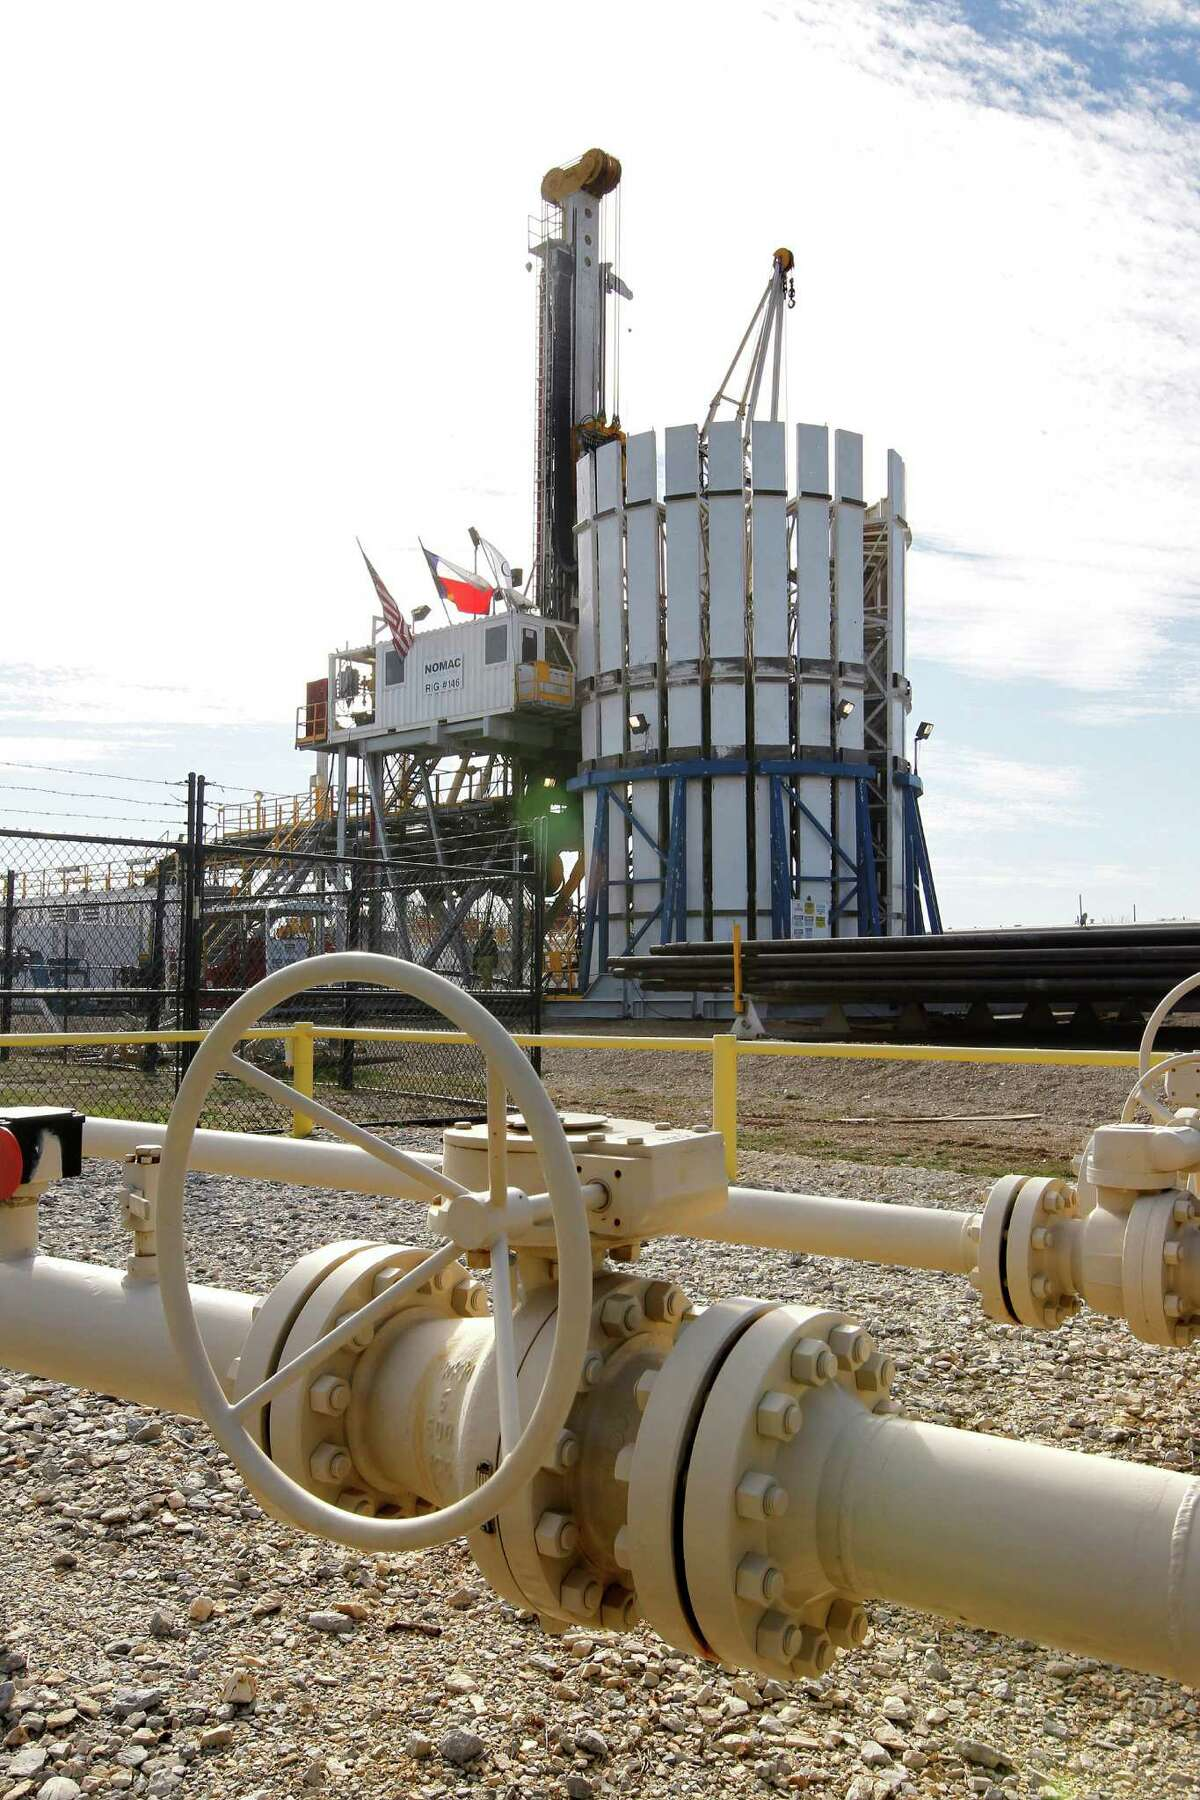 Oklahoma City-based Chesapeake, which has this production facility in Fort Worth, is dealing with low natural gas prices and heavy debt. Natural gas still makes up 76 percent of its total output, down from 81 percent a year ago.